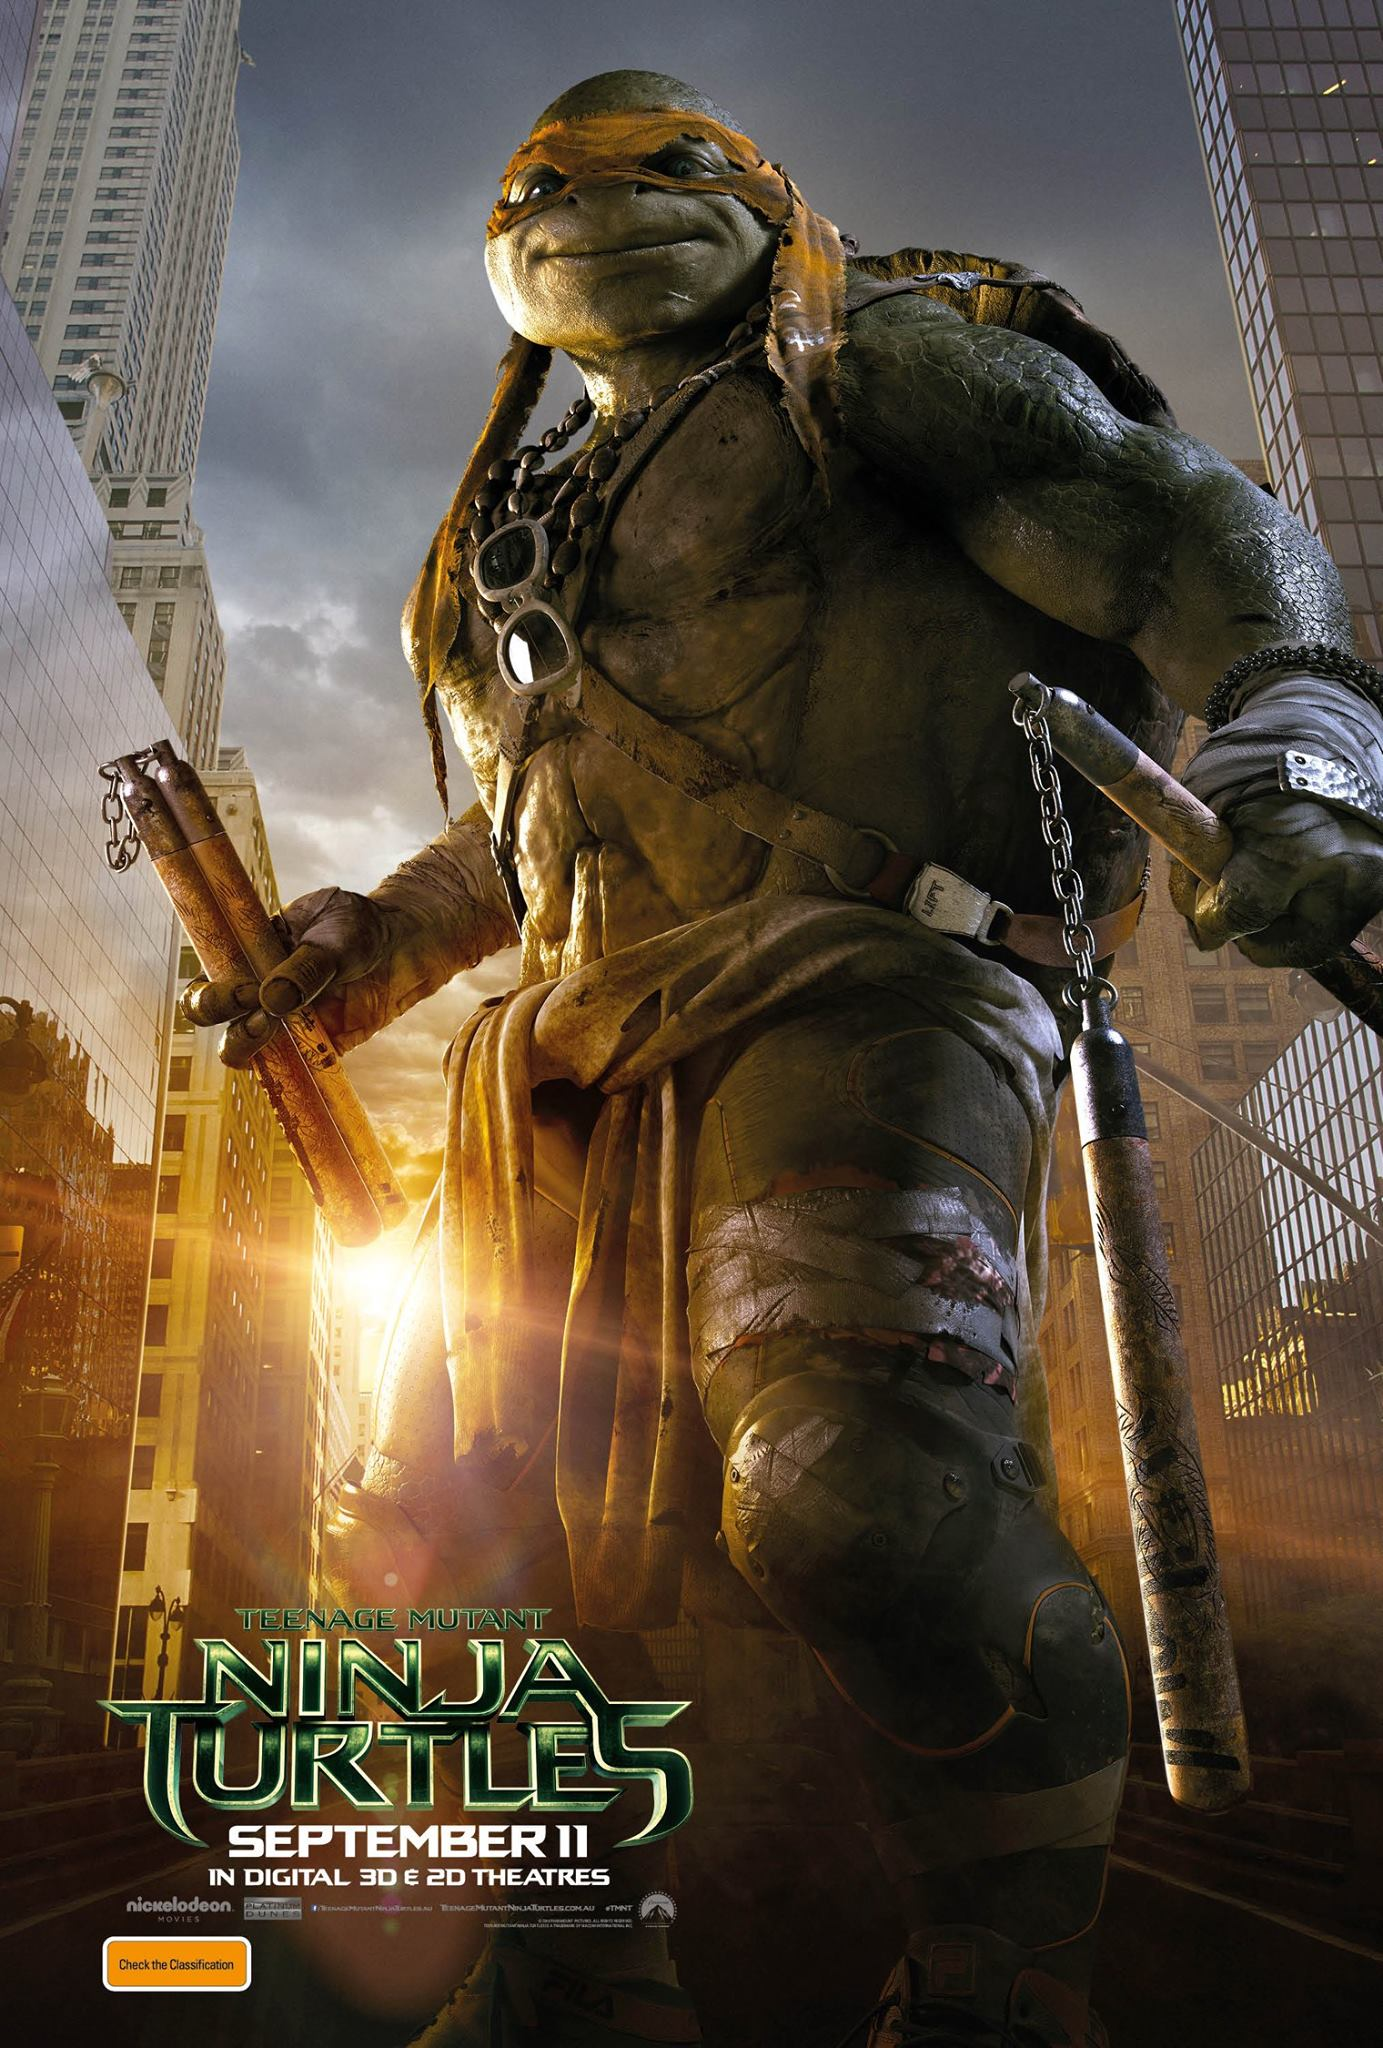 Teenage Mutant Ninja Turtles Poster Controversy: Paramount ... |Tmnt 2014 Poster 911